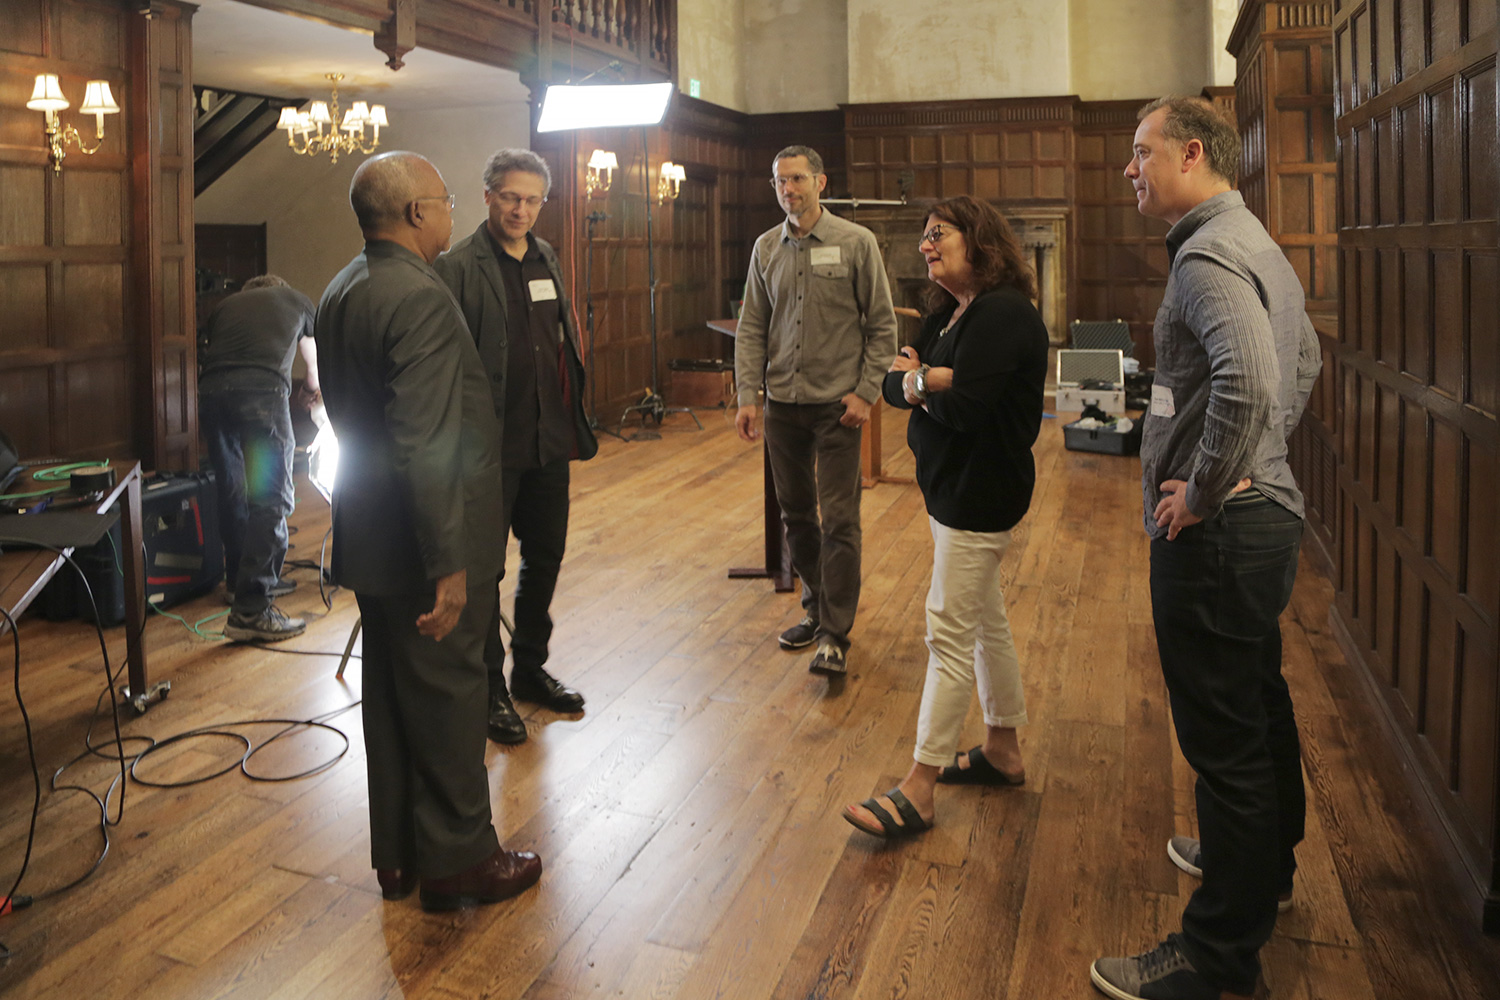 Members of the production team consult during filming in the Naumburg Room.